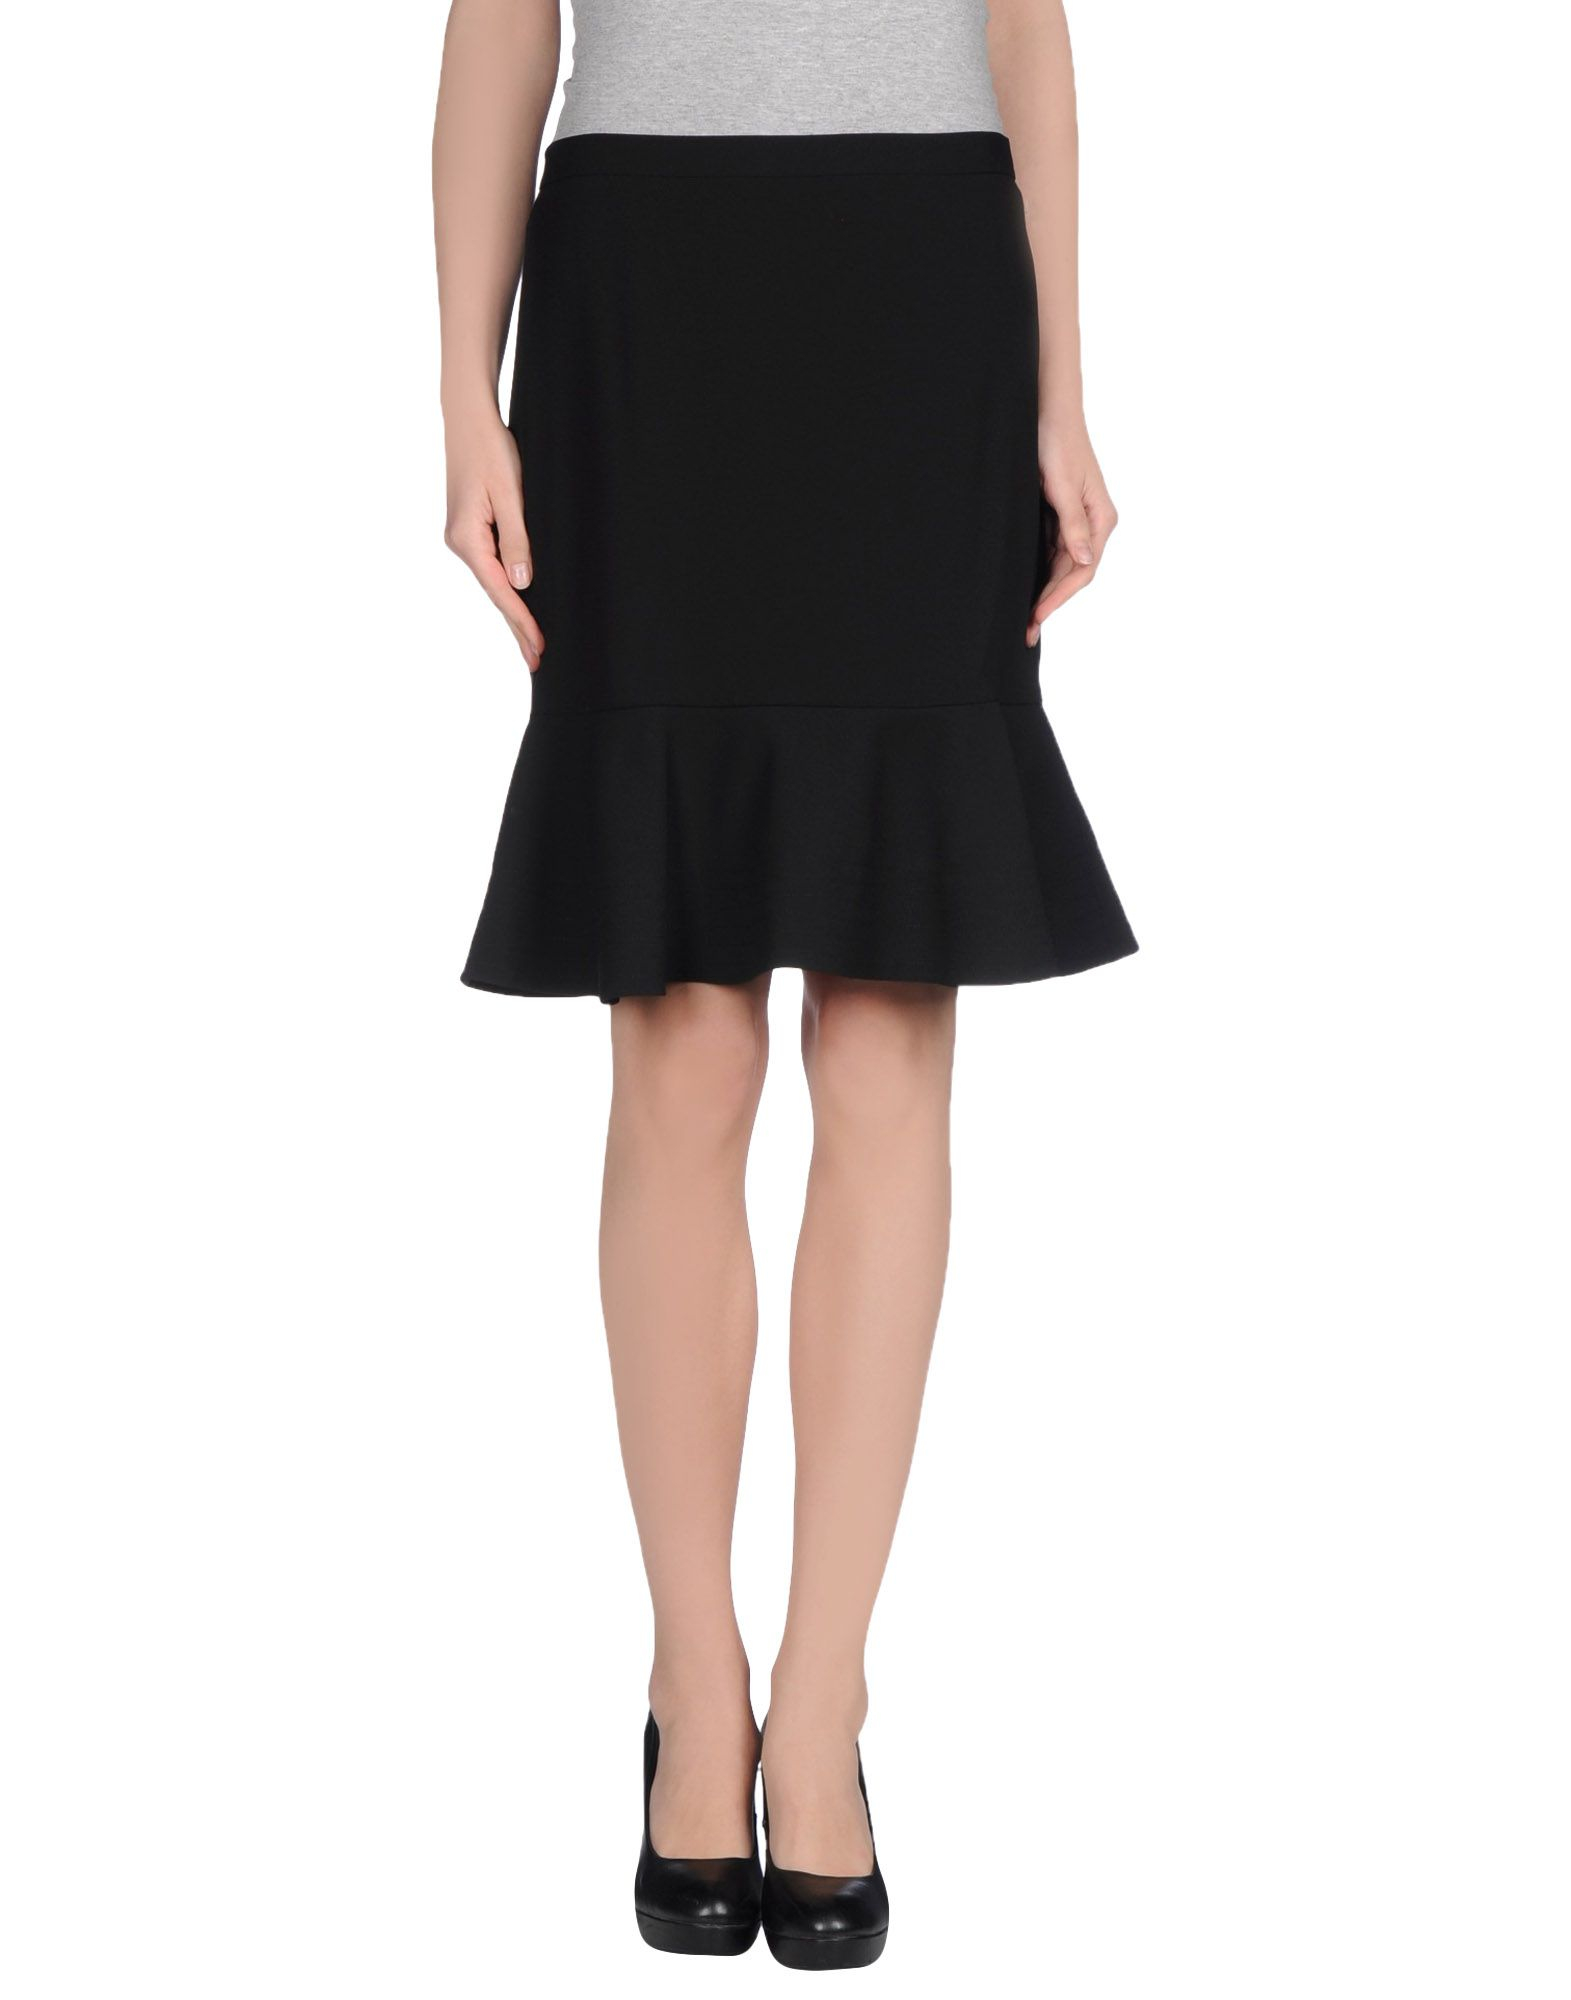 dkny knee length skirt in black lyst